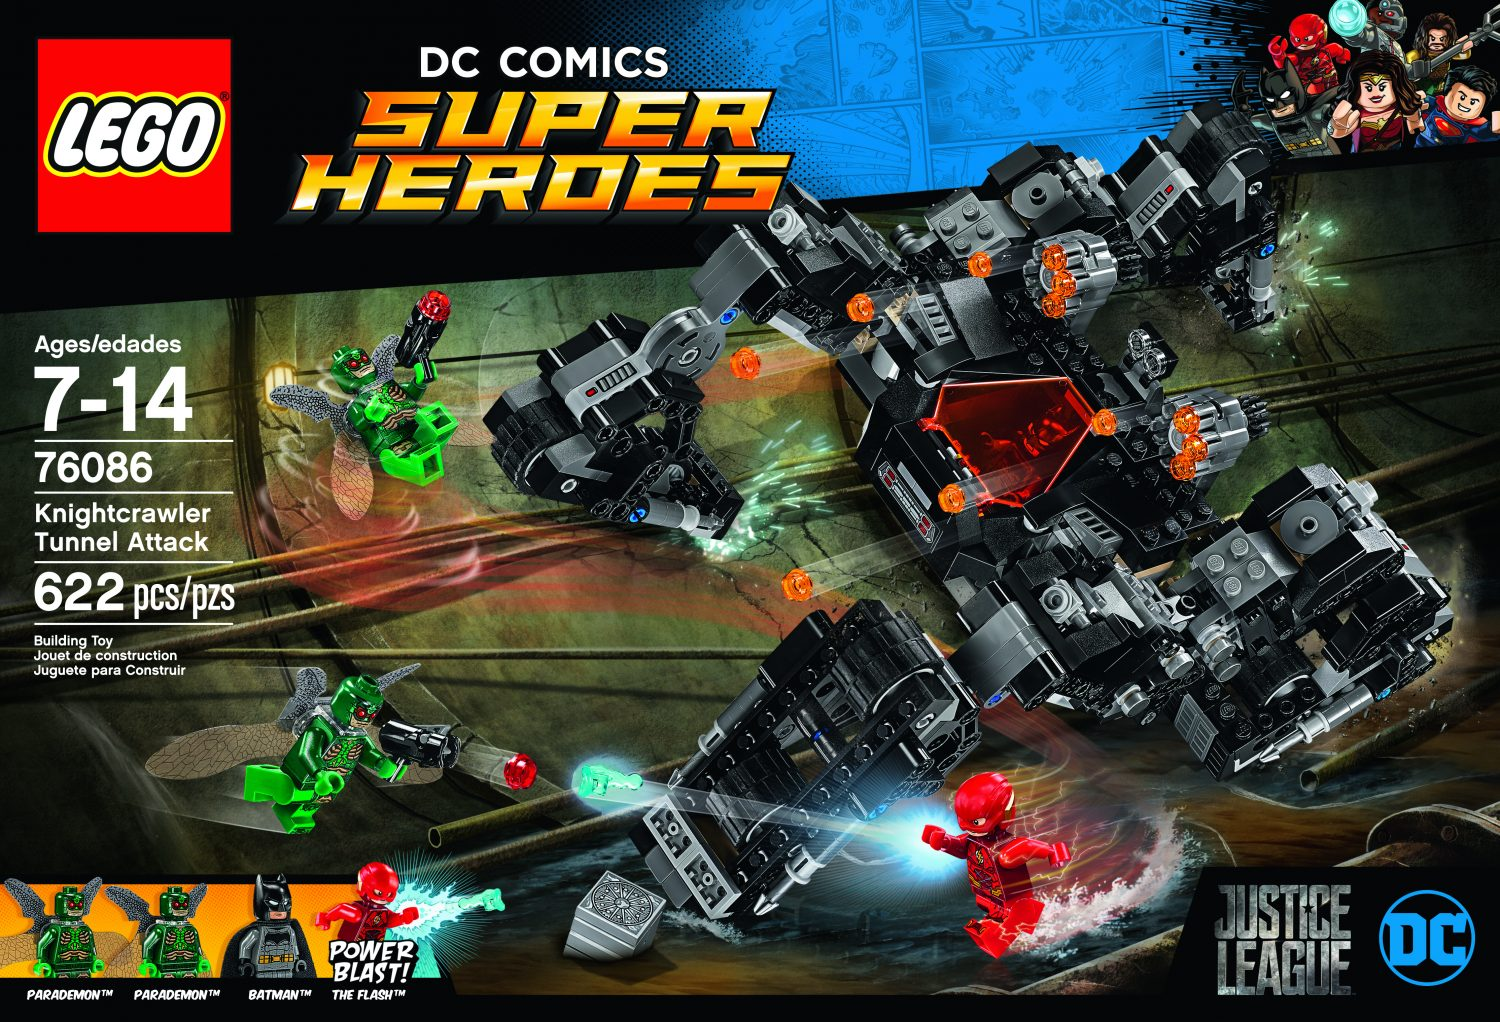 LEGO Super Heroes – Justice League Movie Sets Announced